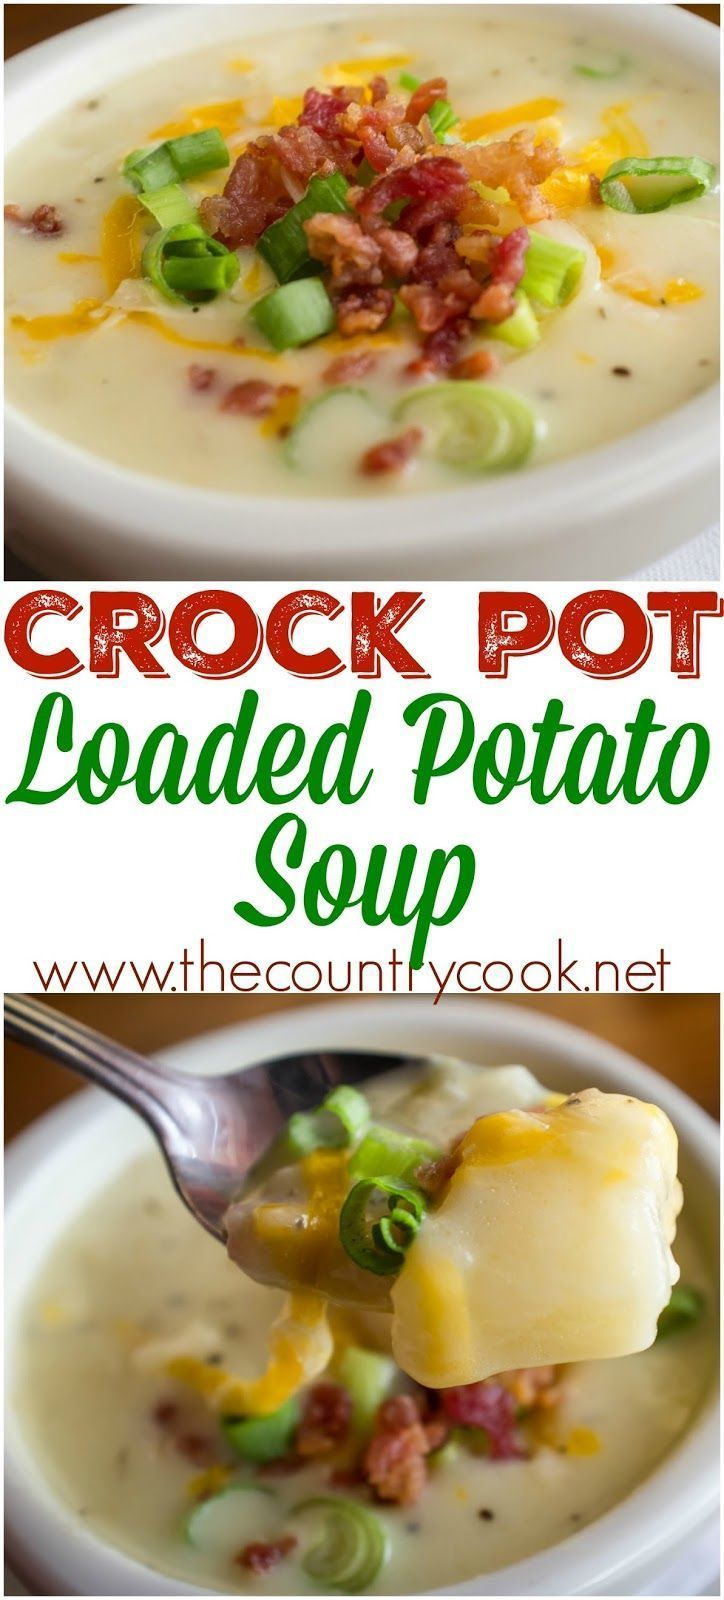 Cheap and easy potato soup recipes